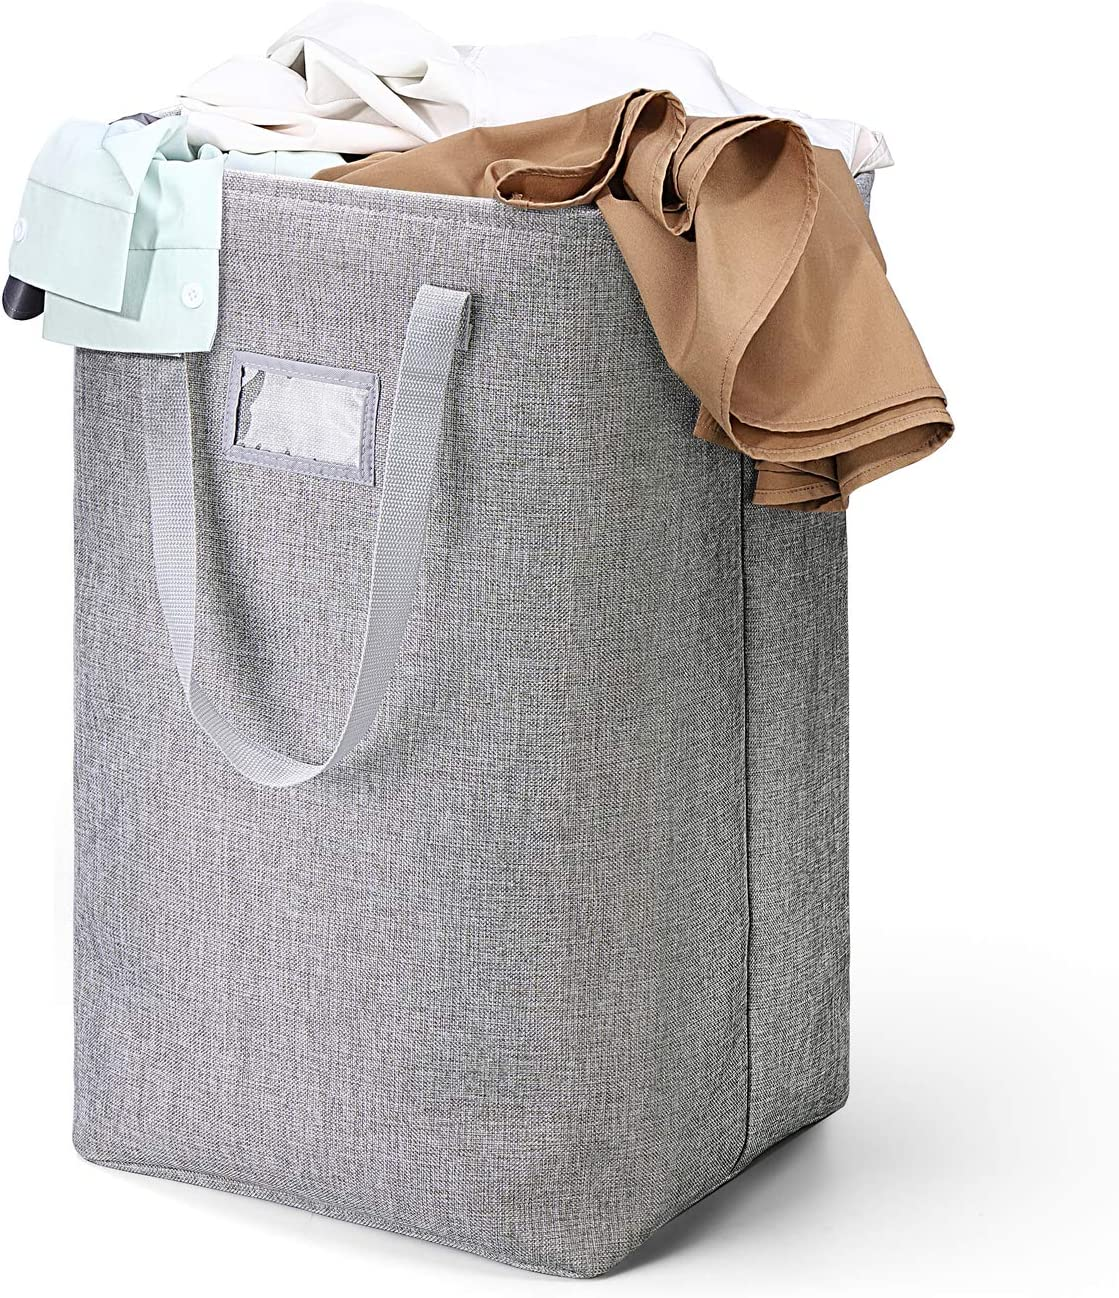 HOUSE DAY Laundry Hamper Collapsible with Removeable Laundry Bag & Sorting Pocket, Large Linen Dirty Clothes Hamper with Detachable Brackets Well-Holding Foldable for Dorm Room Storage (Grey)